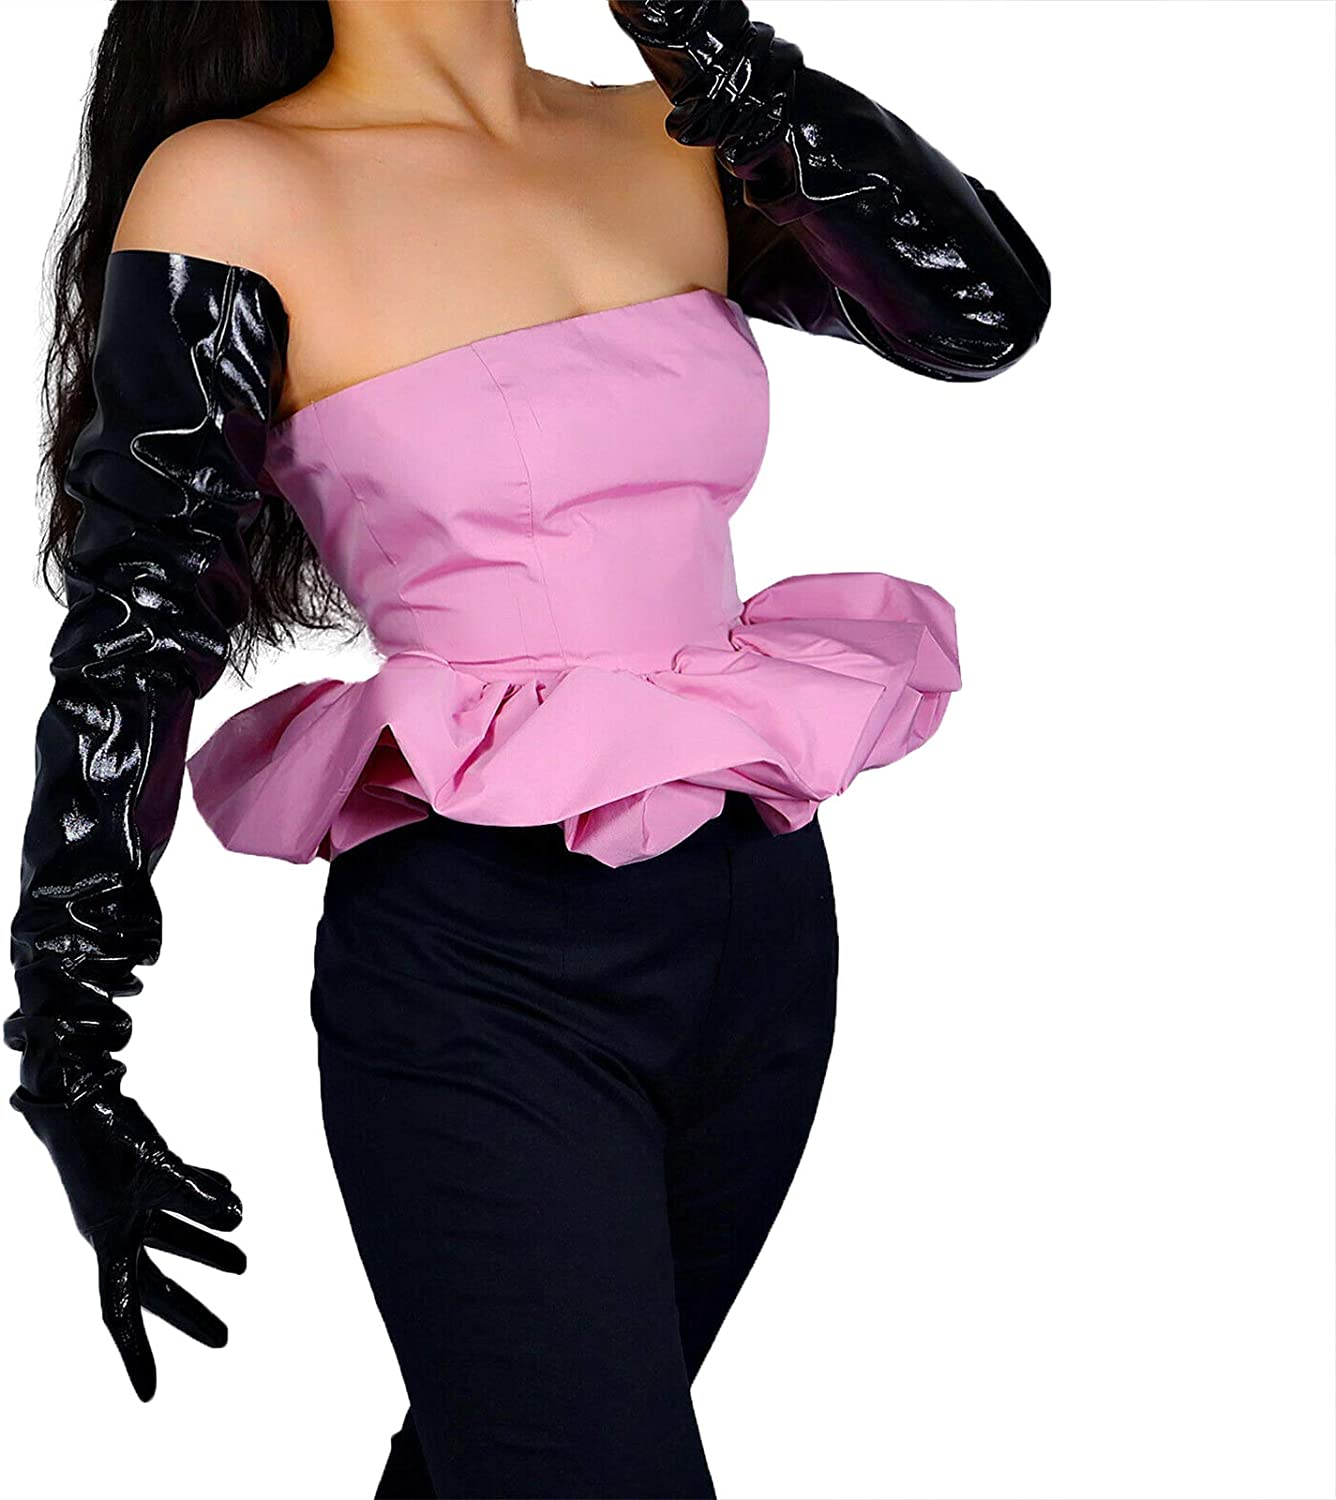 GooDay Women's Extra Long Leather Gloves Shoulder Length Faux Patent Oversize Large Arm Sleeves Unisex Shiny Black 35 inches